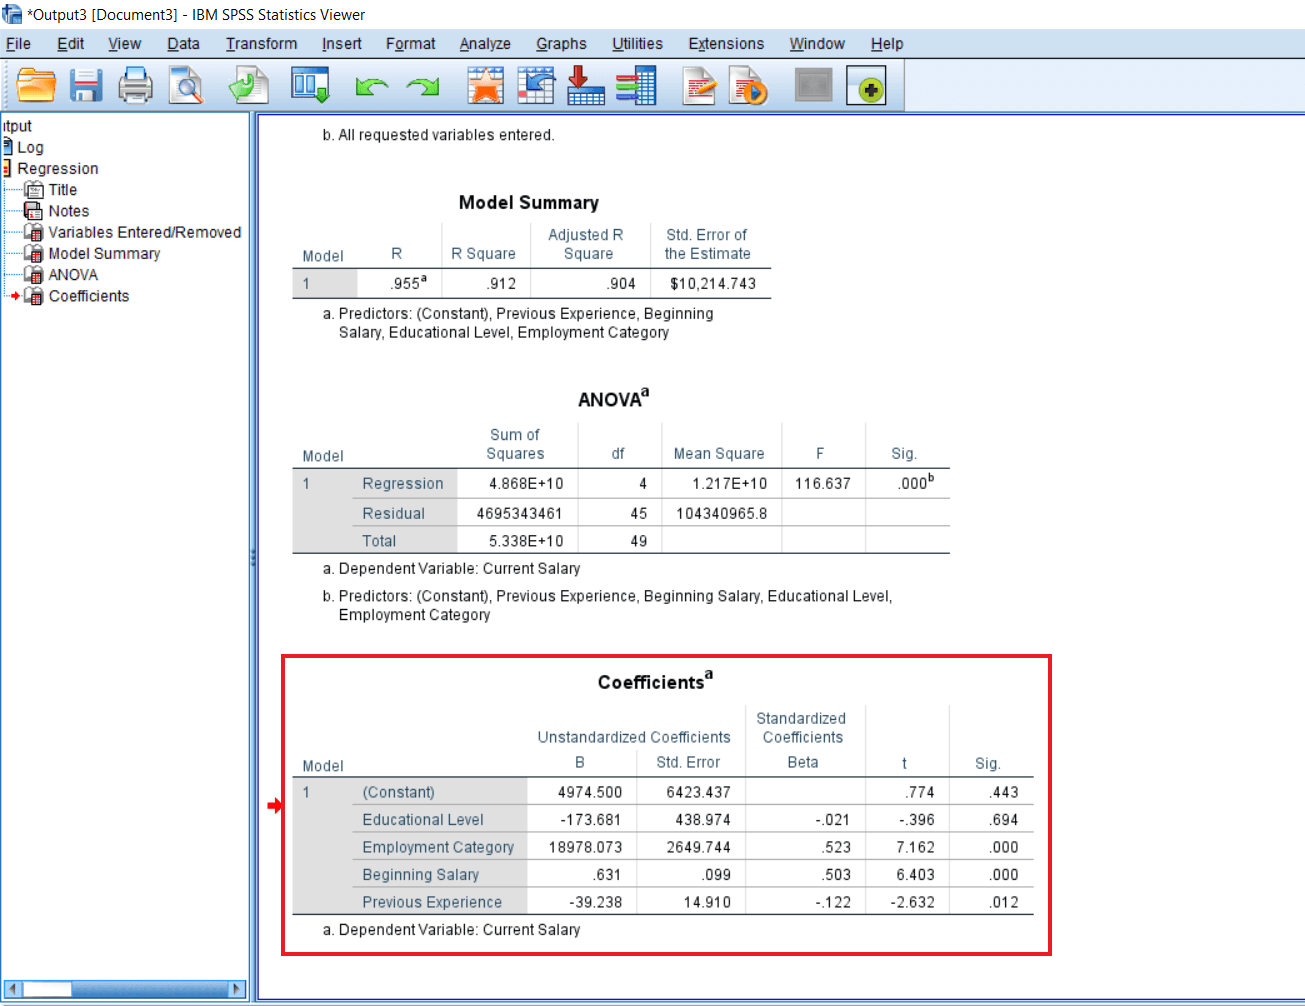 Enter method of Multiple Regression